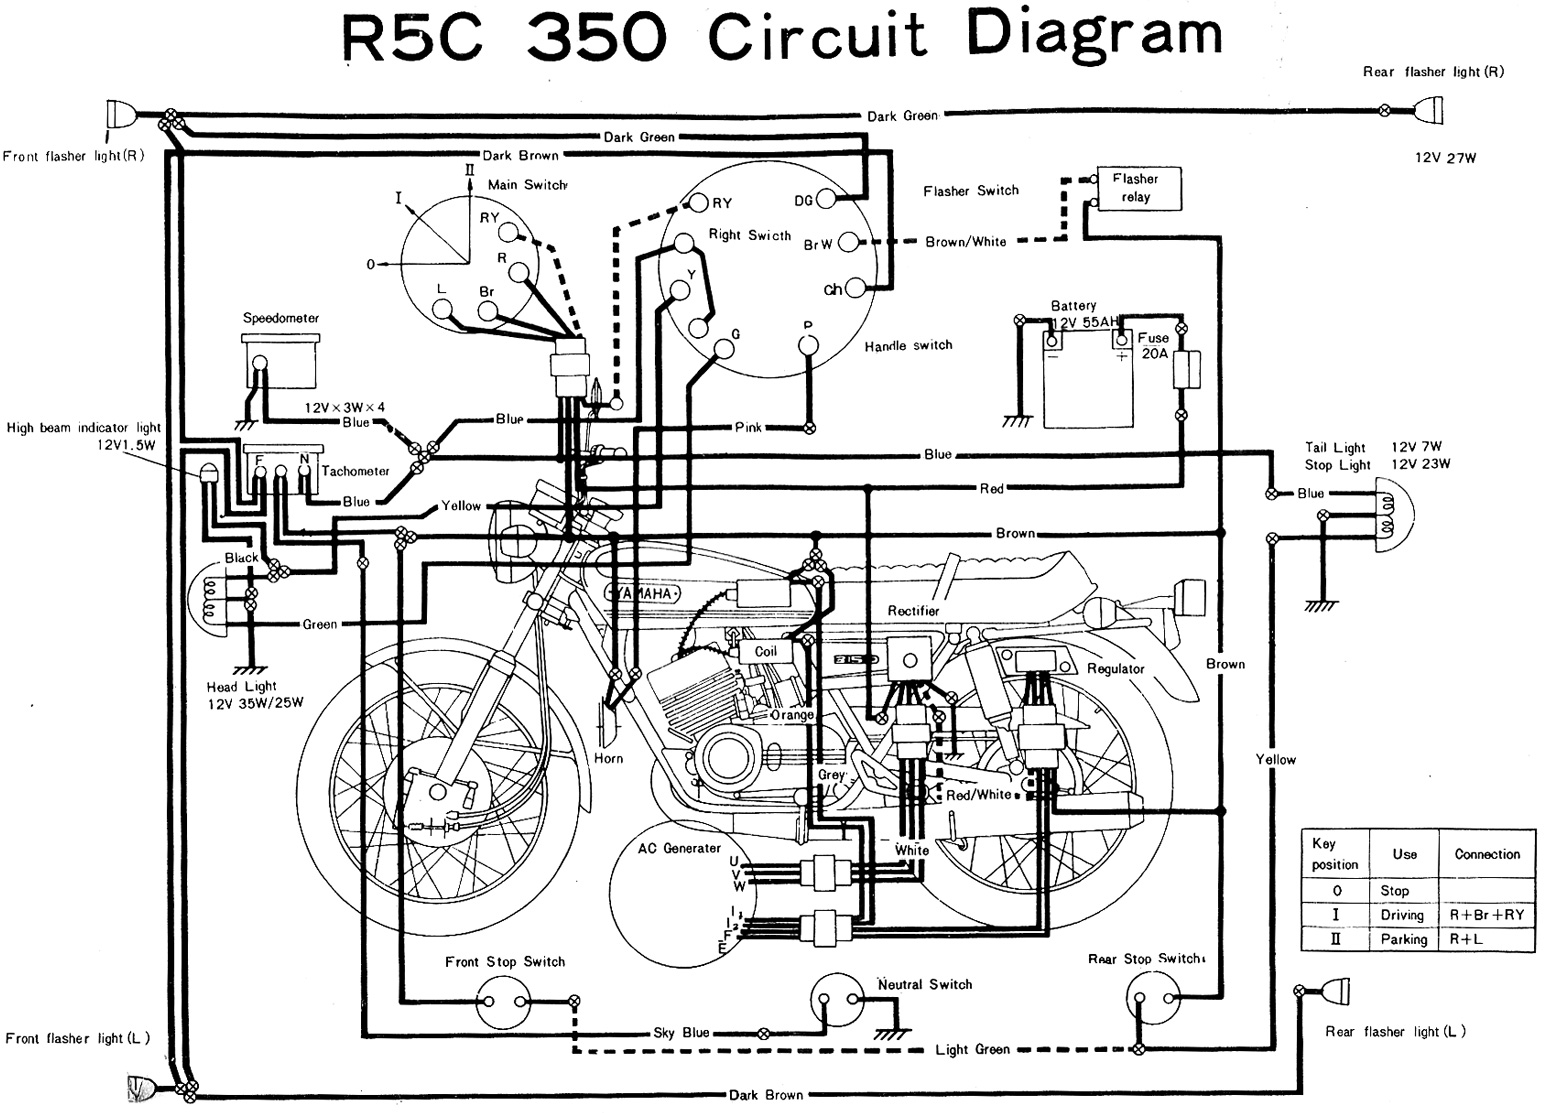 Yamaha R5C 350 Electrical Wiring Diagram1 motorcycle wiring diagrams